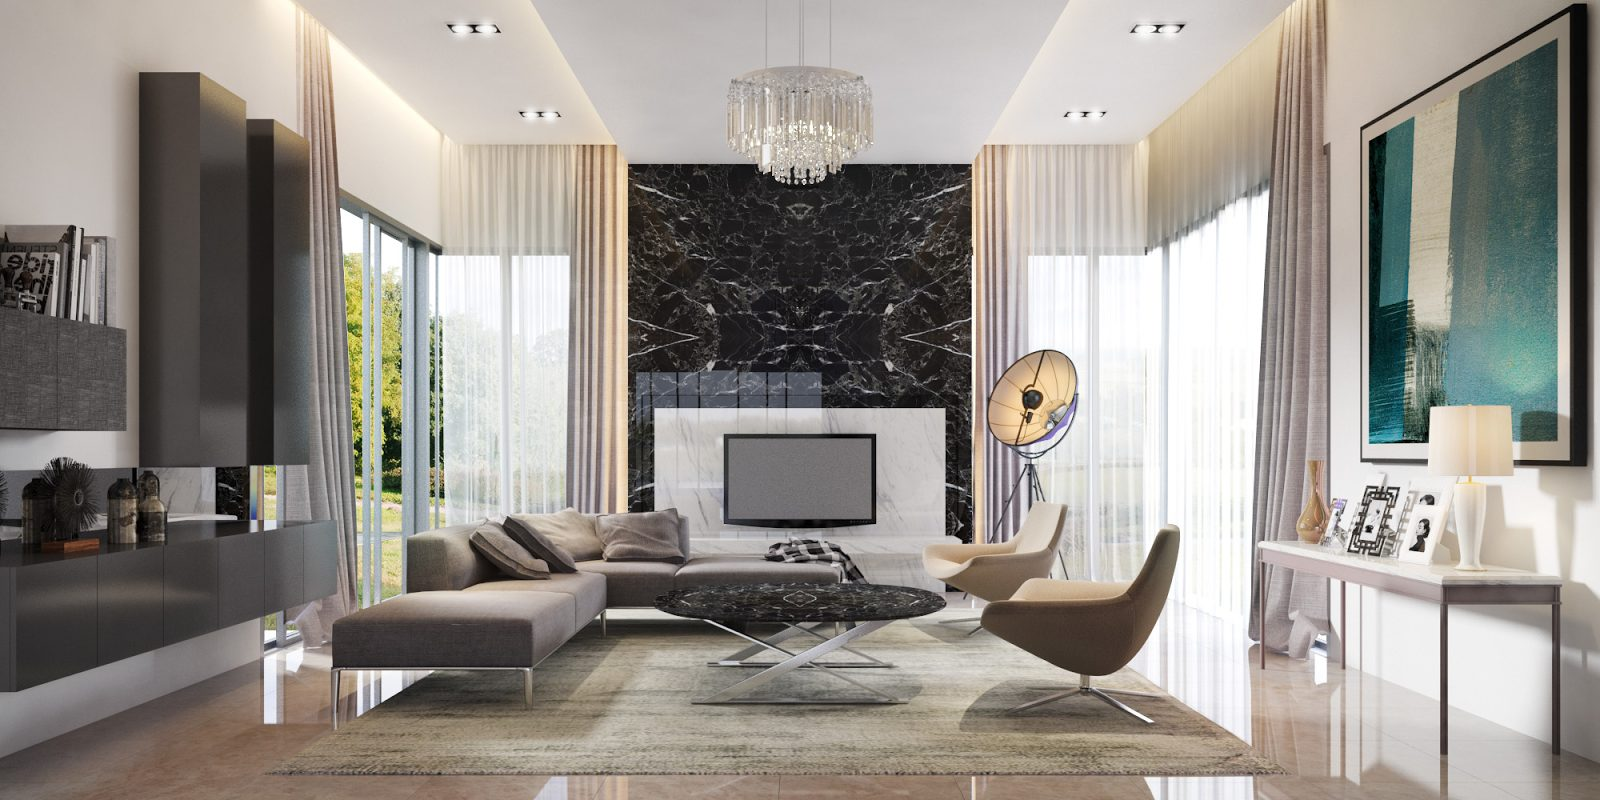 70 Living Room Design Ideas to Welcome You Home  Recommendmy LIVING